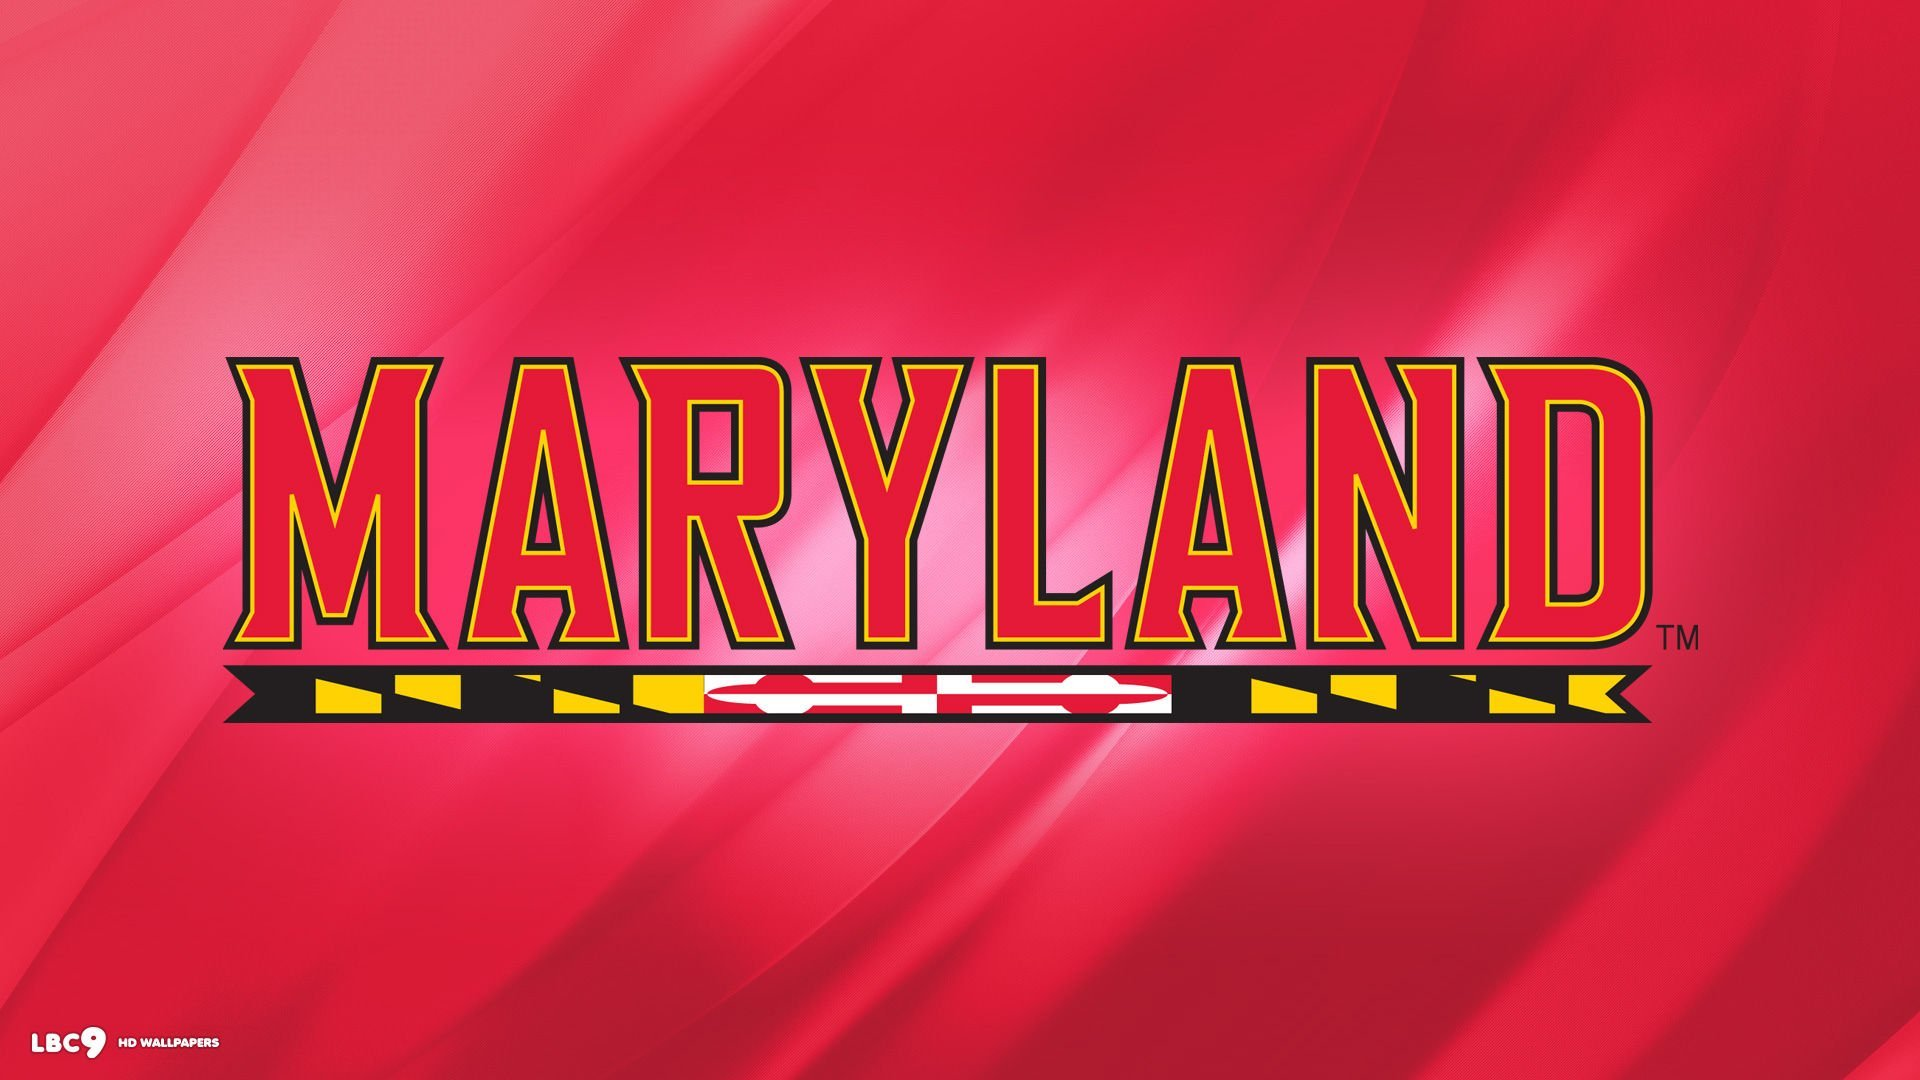 MARYLAND TERRAPINS college football wallpaper background 1920x1080